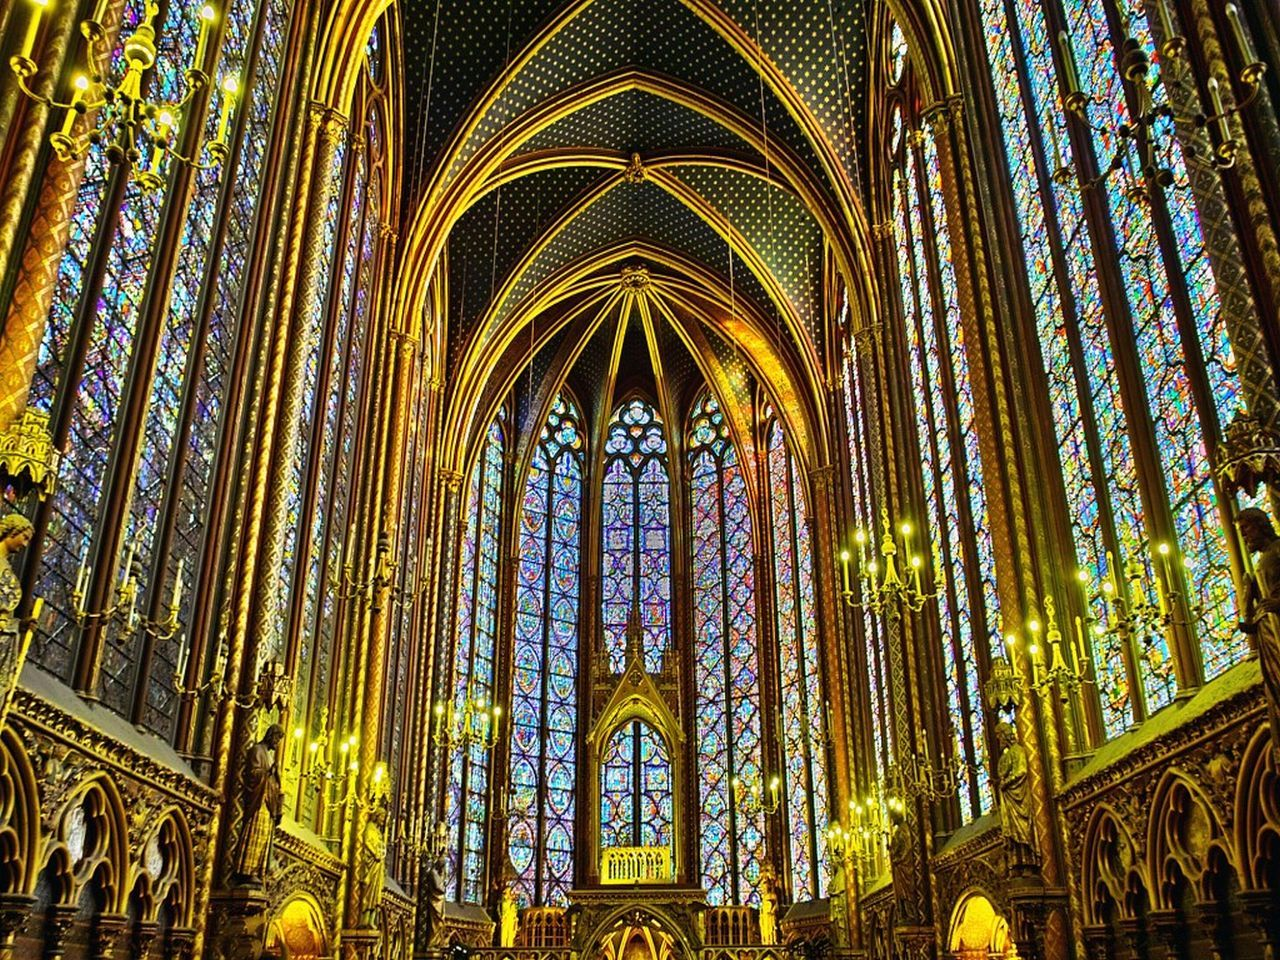 The Upper chapel was reserved for the King and held holy relics. Today you can enjoy the spectacular stained glass windows in the upper Chapel which cover a 600 Square meters or over 6,400 Sq. feet.#France #Vacations